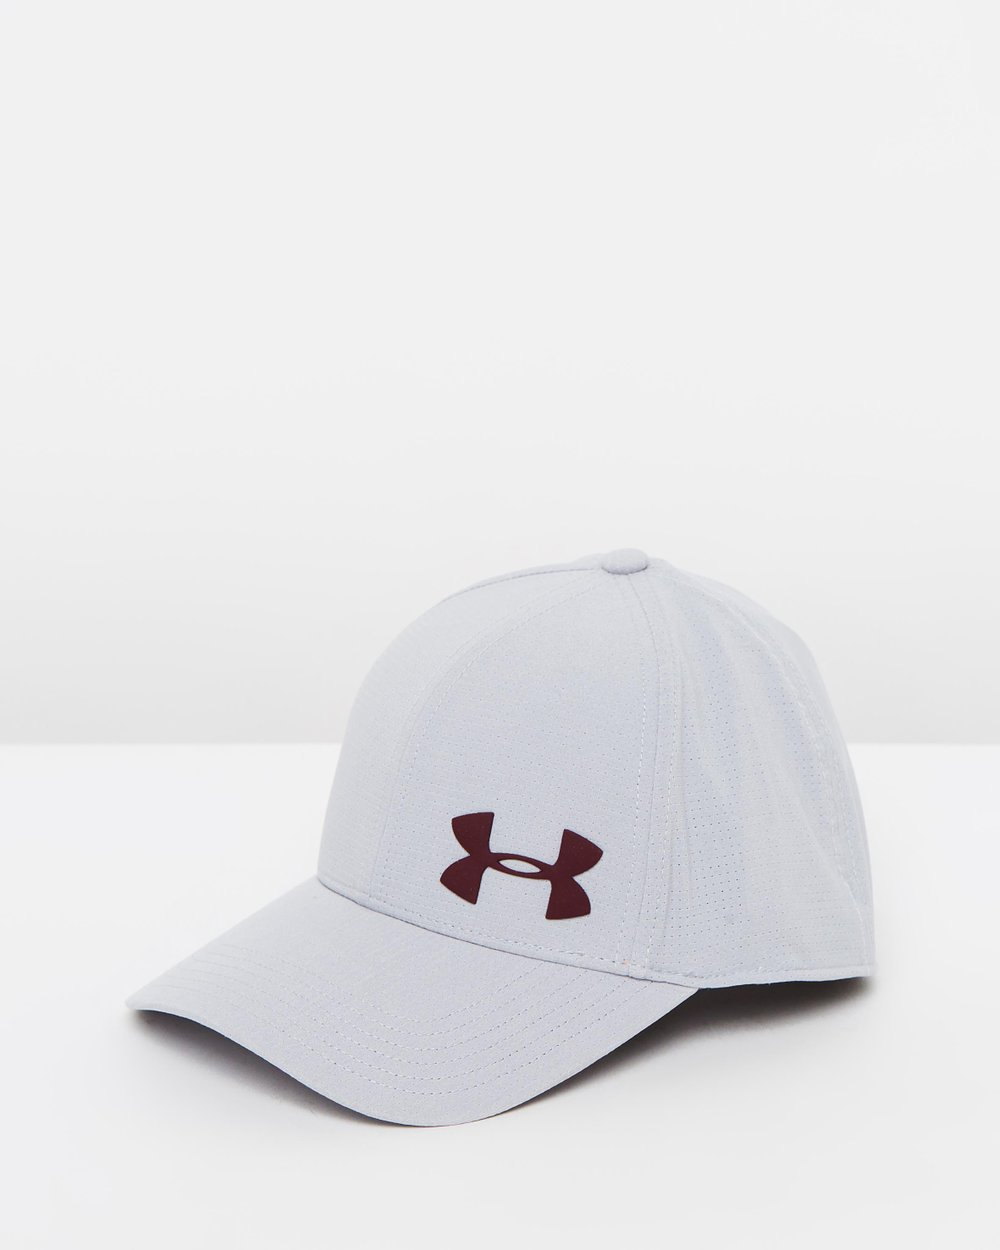 cb788c6a833 AirVent Core Cap - Men s by Under Armour Online